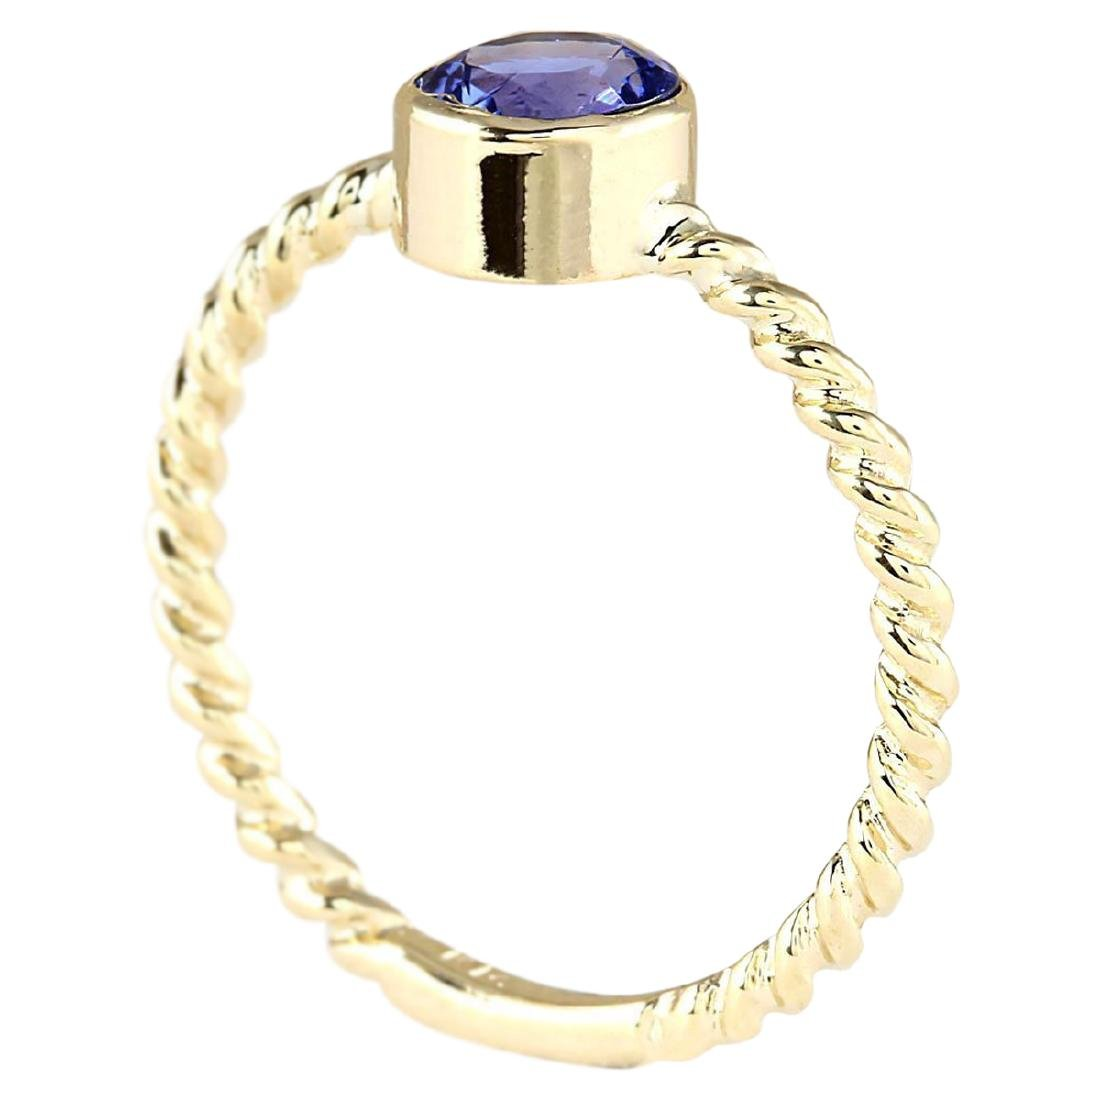 1.00 CTW Natural Tanzanite Ring In 18K Yellow Gold - 3